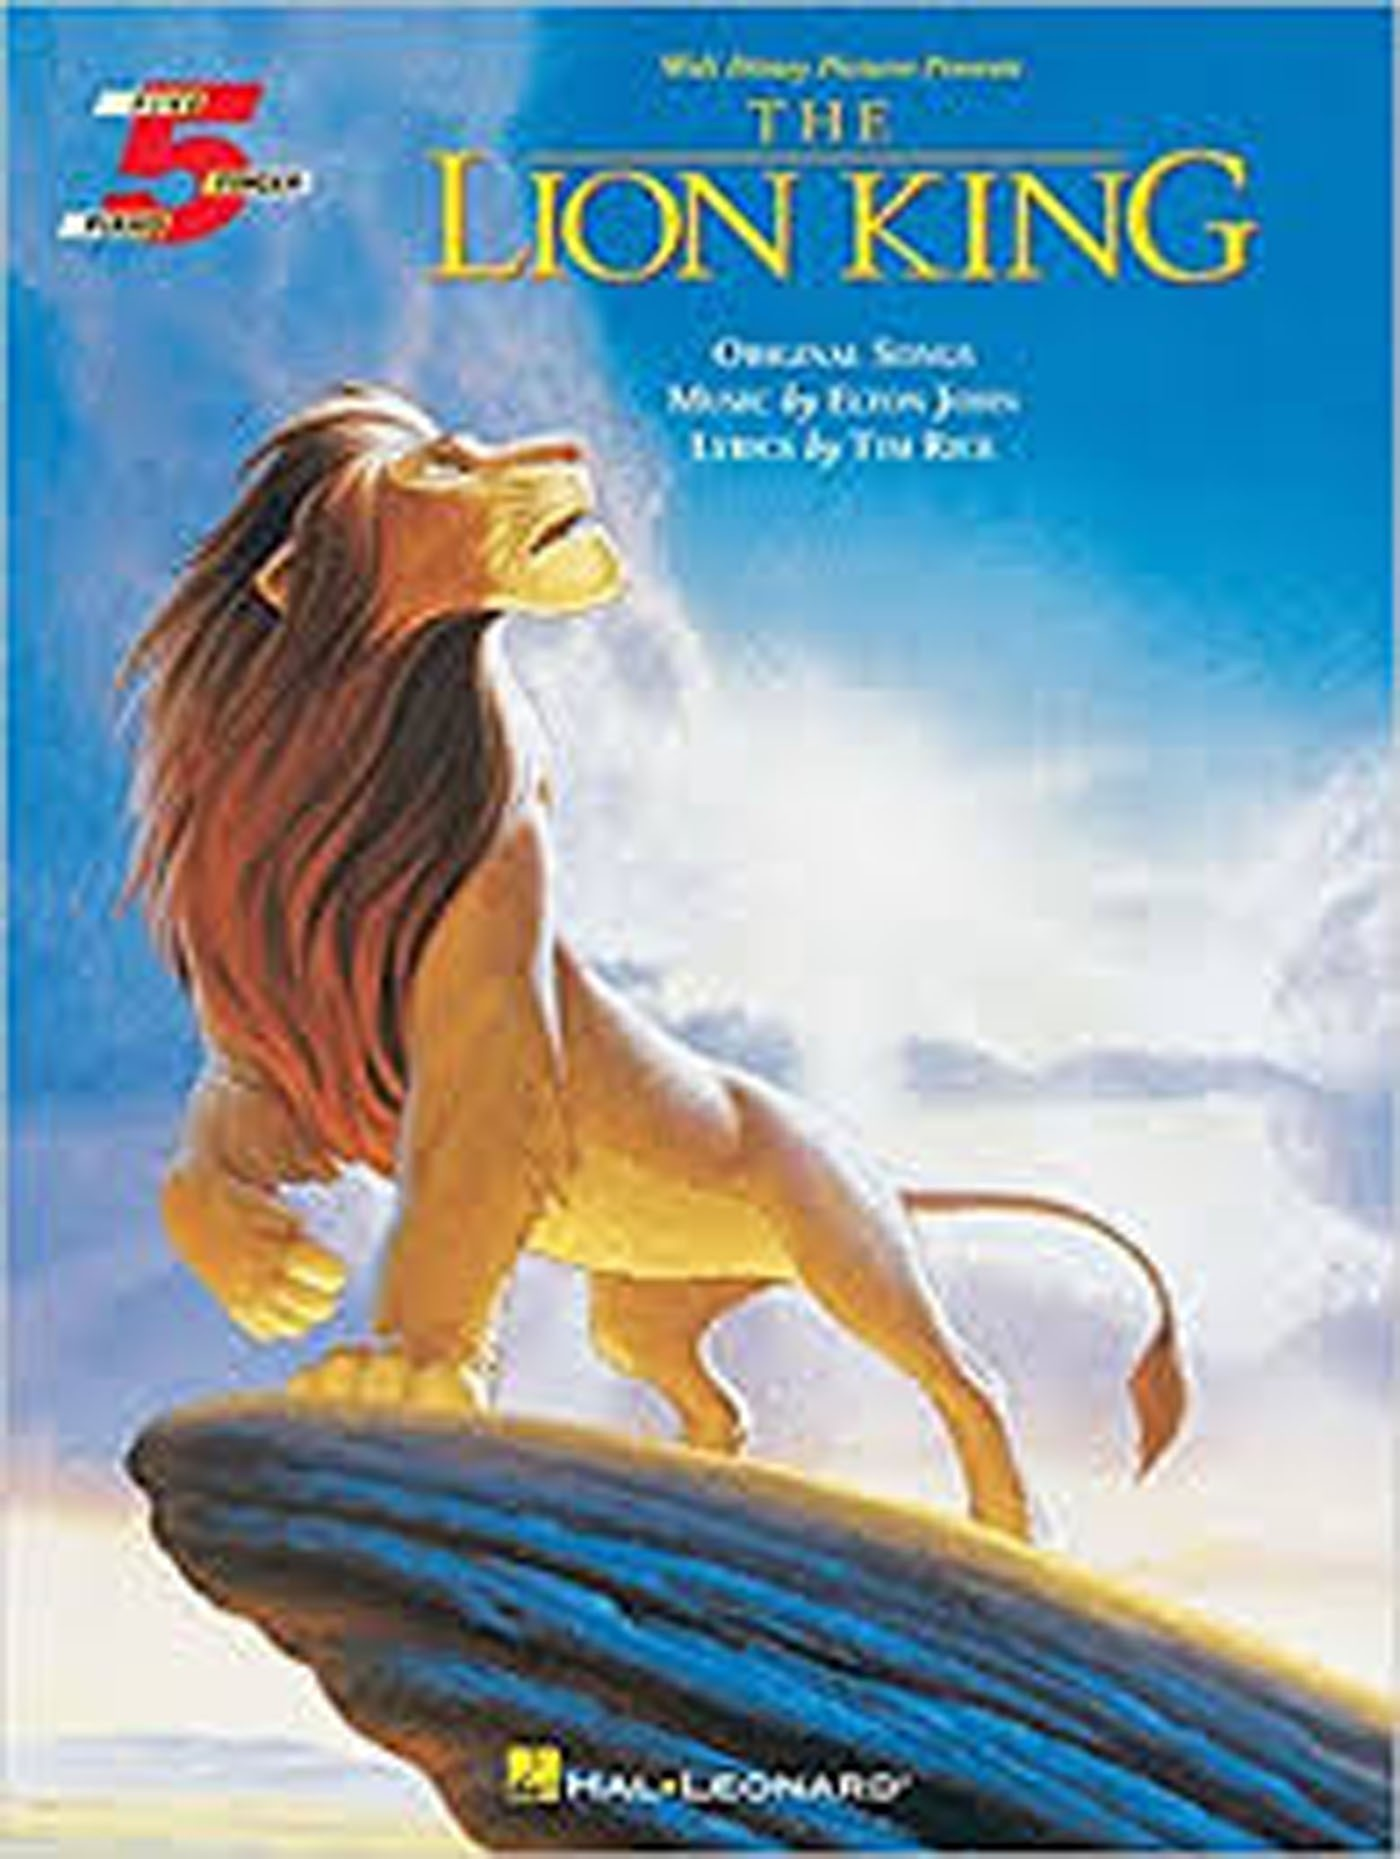 The Lion King Five Finger Piano Disney Film Soundtracks Songs Book S158